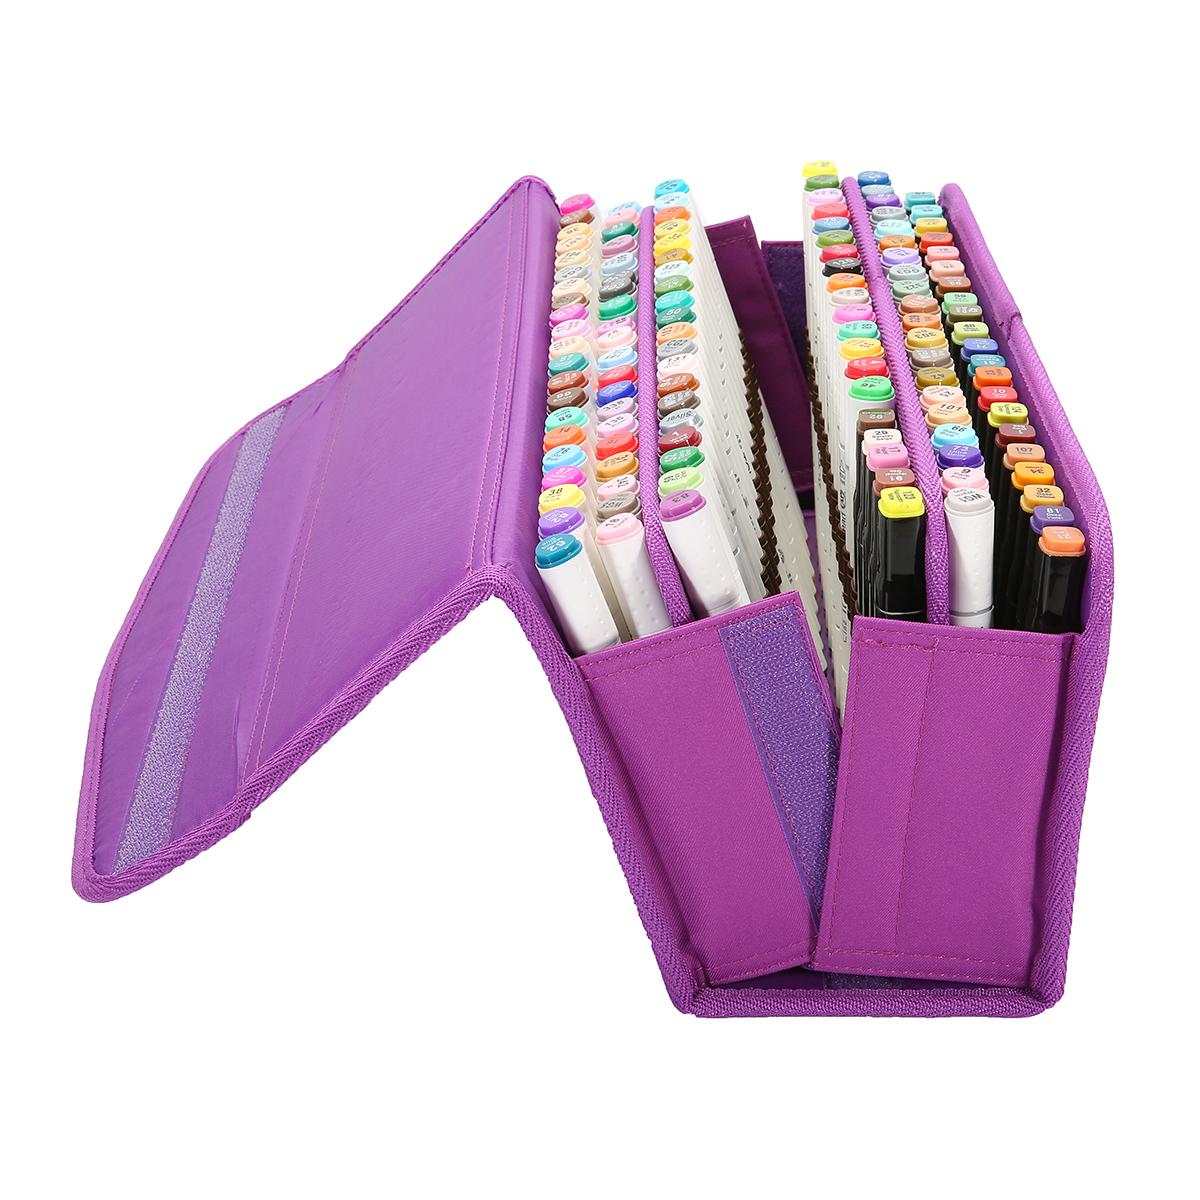 Moaere120 Slots Pencil Case Large Capacity Slot Super Big Pu